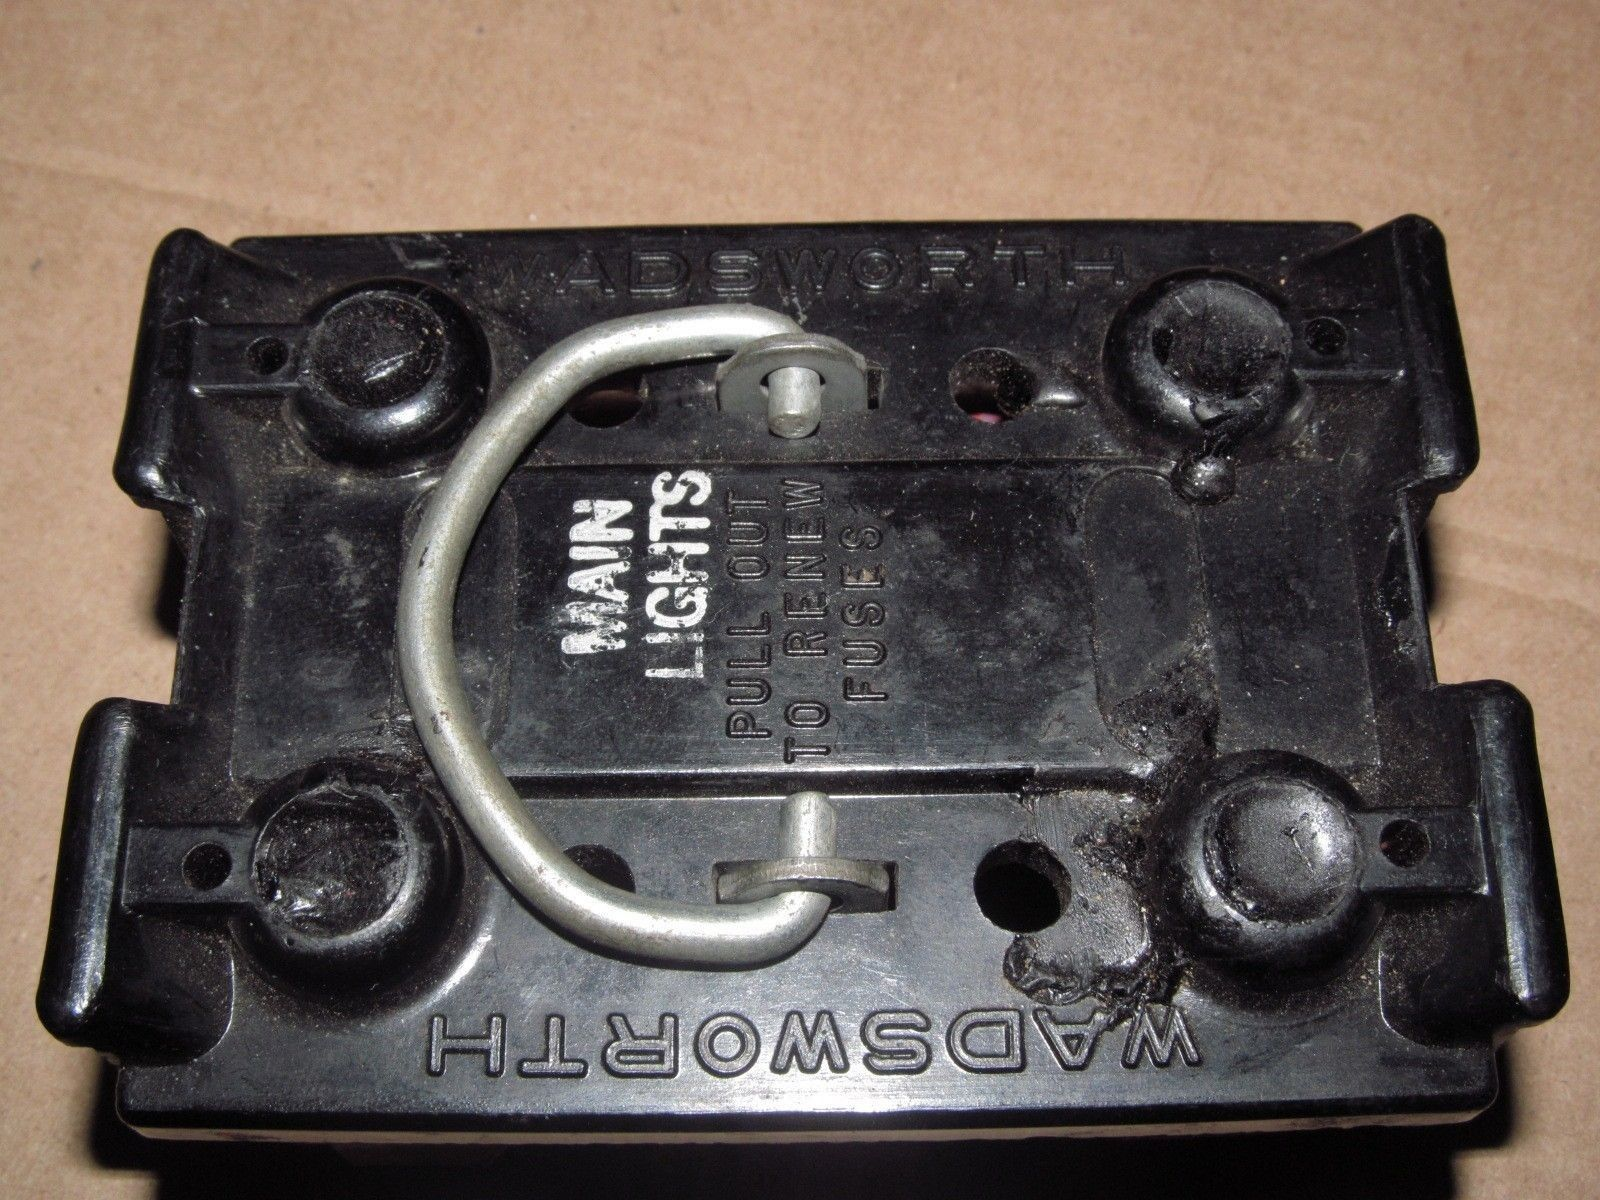 60 Amp Fuse Box That Pulls Out Download Wiring Diagrams Pull Outs Wadsworth Holder Free 60a 30a